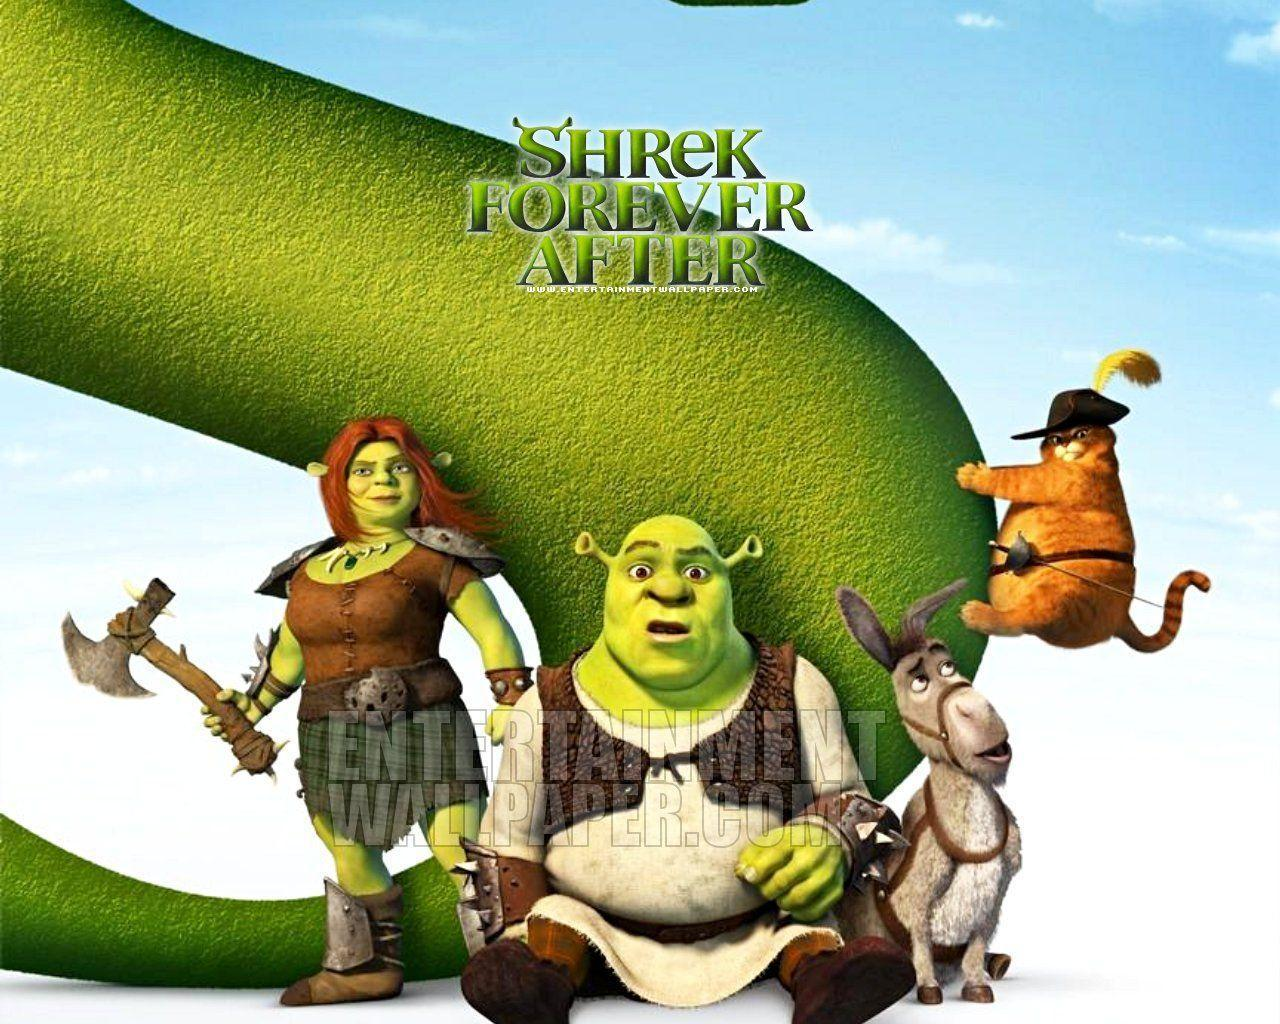 Shrek 2 Cartoon Characters : Shrek wallpapers wallpaper cave